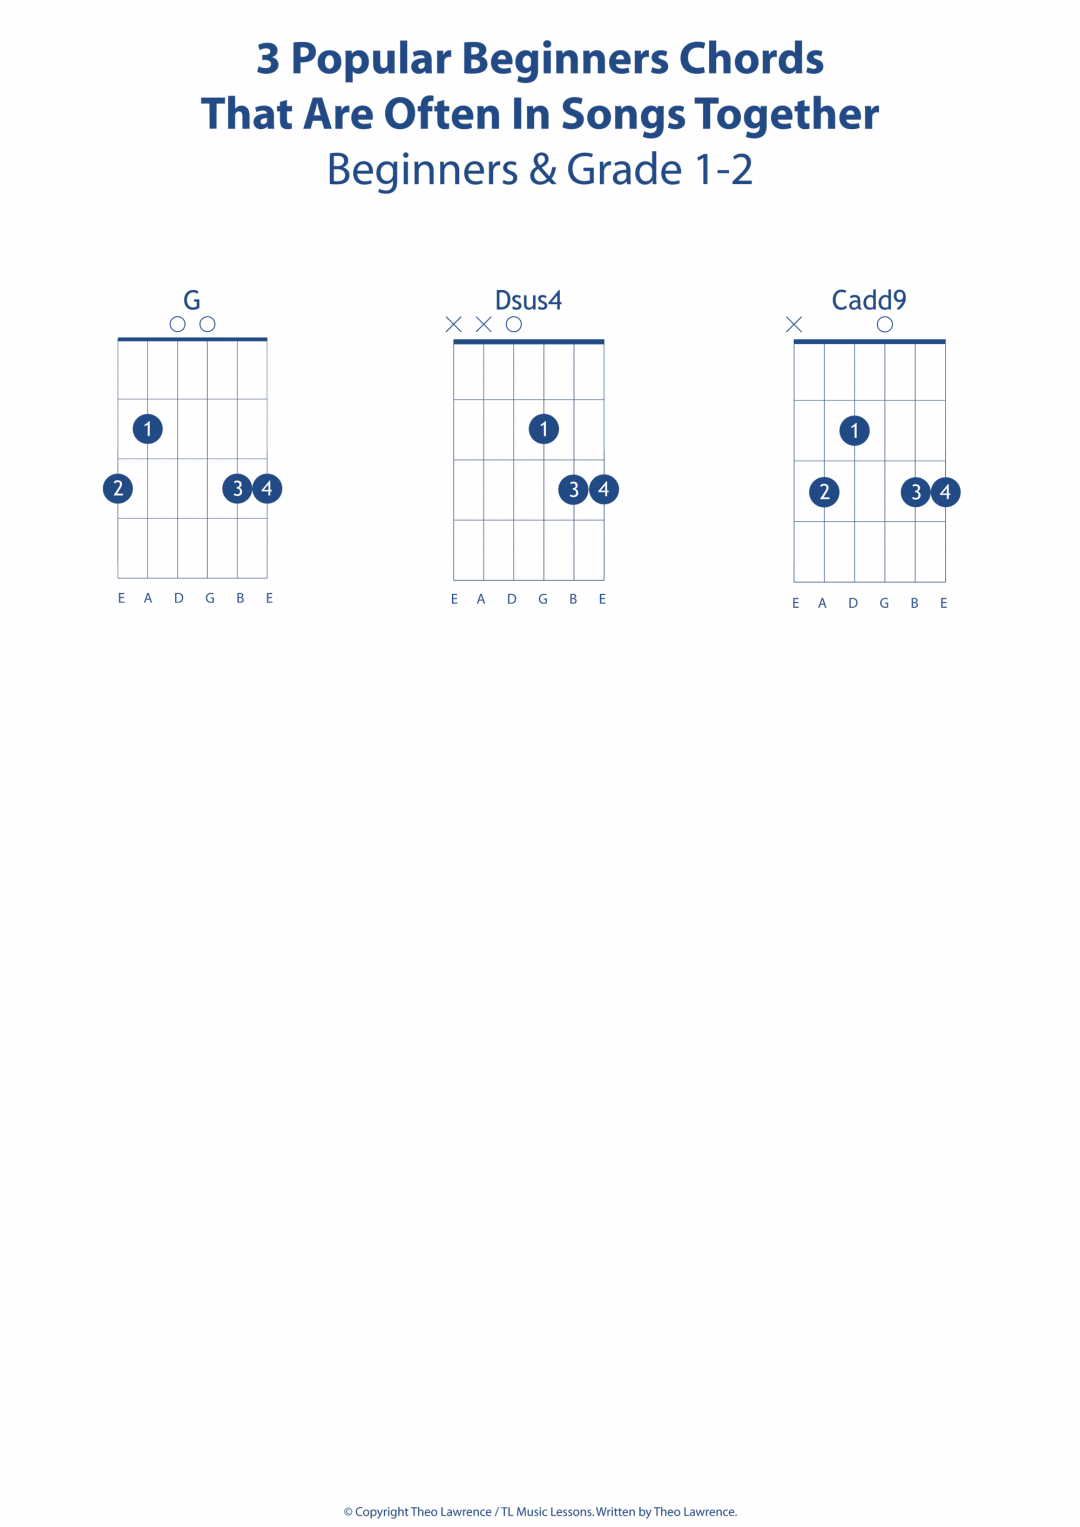 3 Popular Beginners Chords That Are Often In Songs Together – G, Dsus4, Cadd9